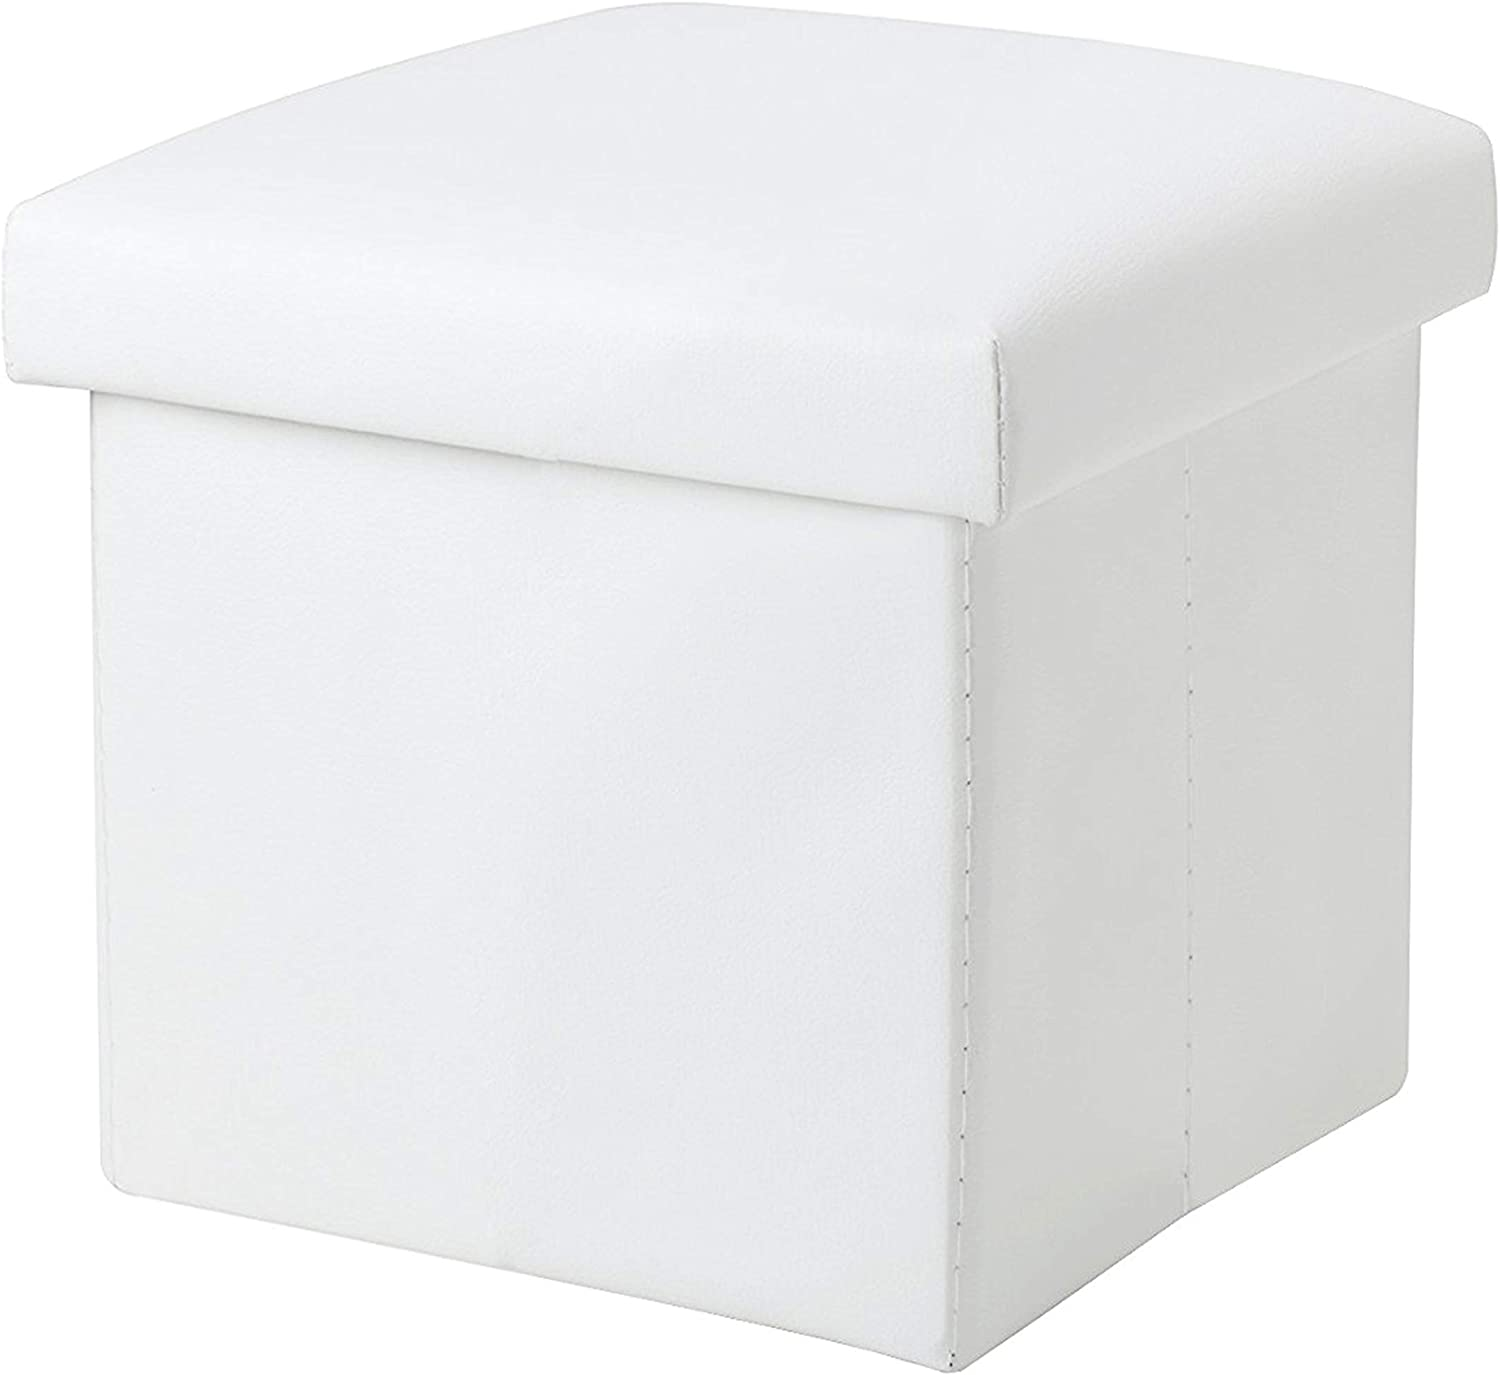 NISUNS OT01 Leather Folding Storage Ottoman Cube Footrest Seat, 12 X 12 X 12 Inches (White)